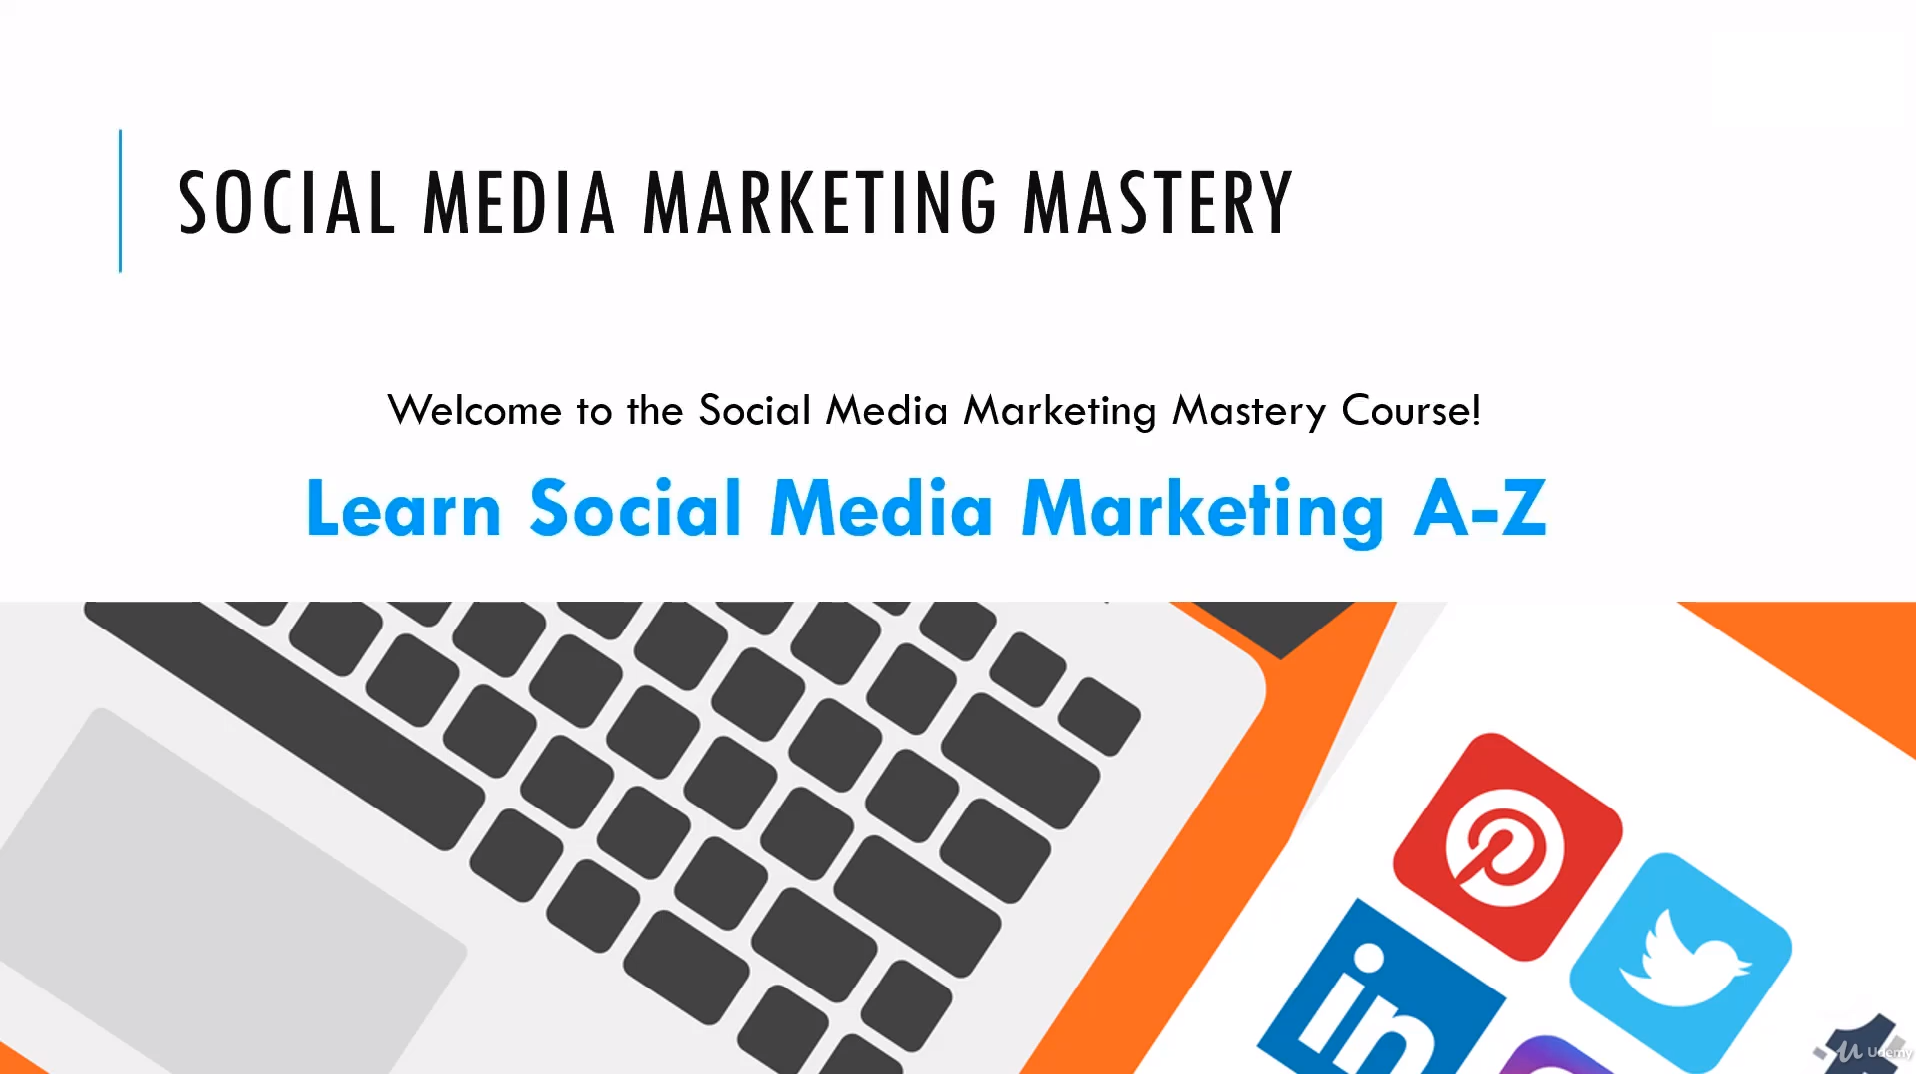 A screenshot of a presentation slide for class called Social Media Marketing Mastery